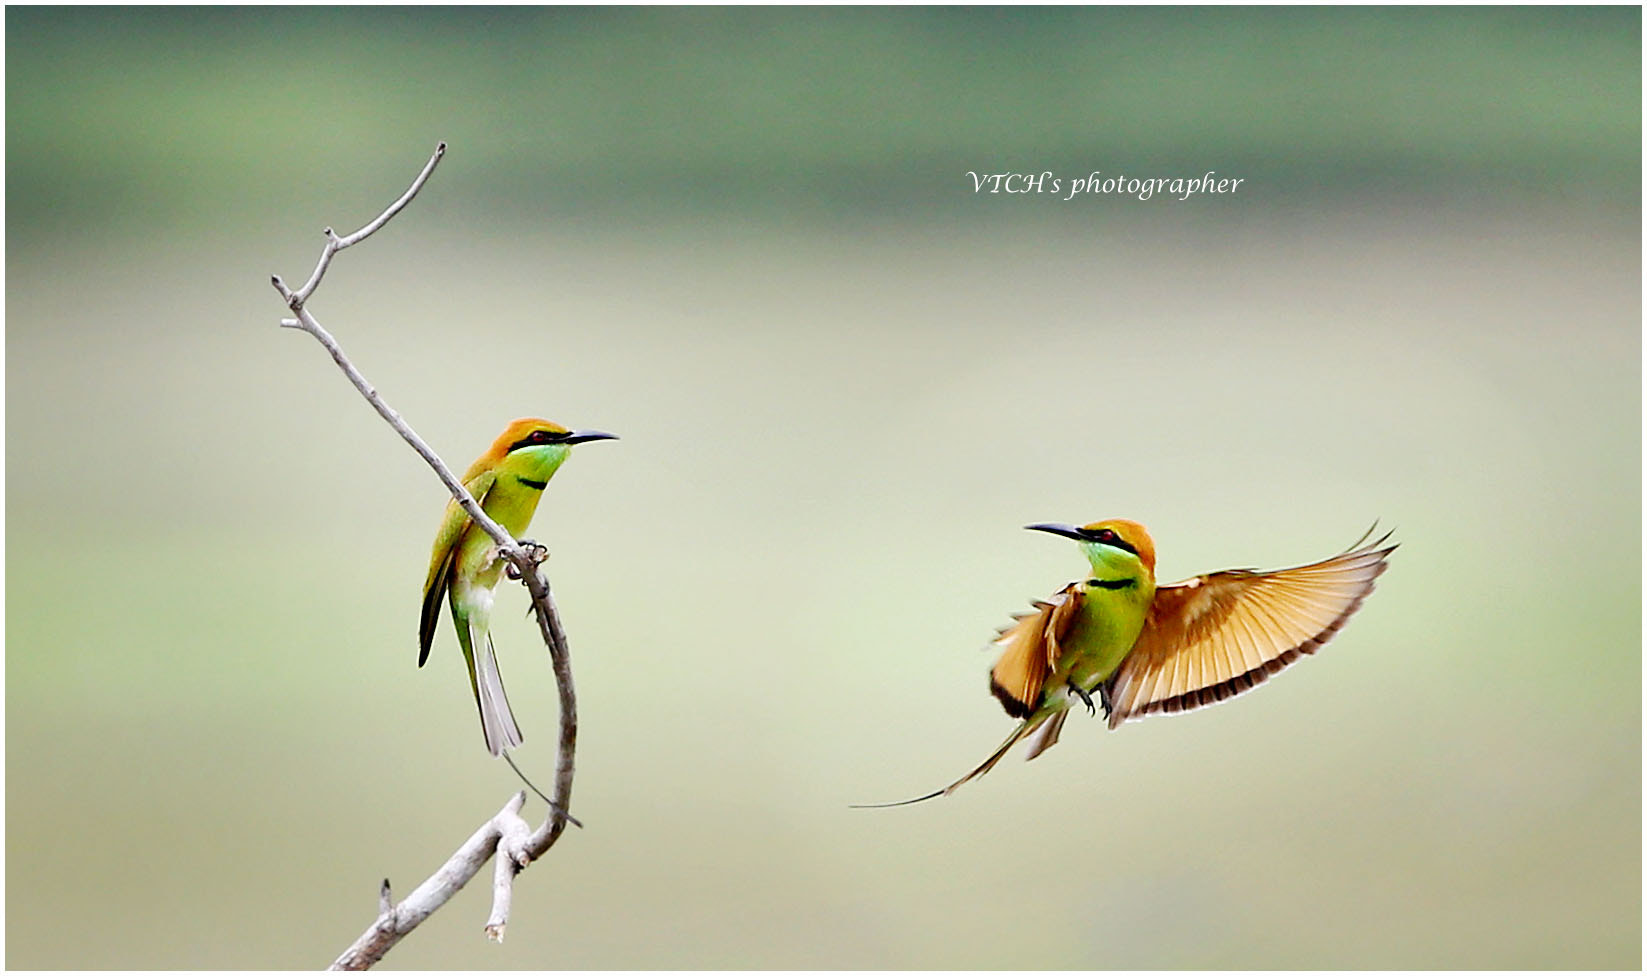 Photograph Bye bye ! by Vu Tuong Chieu on 500px